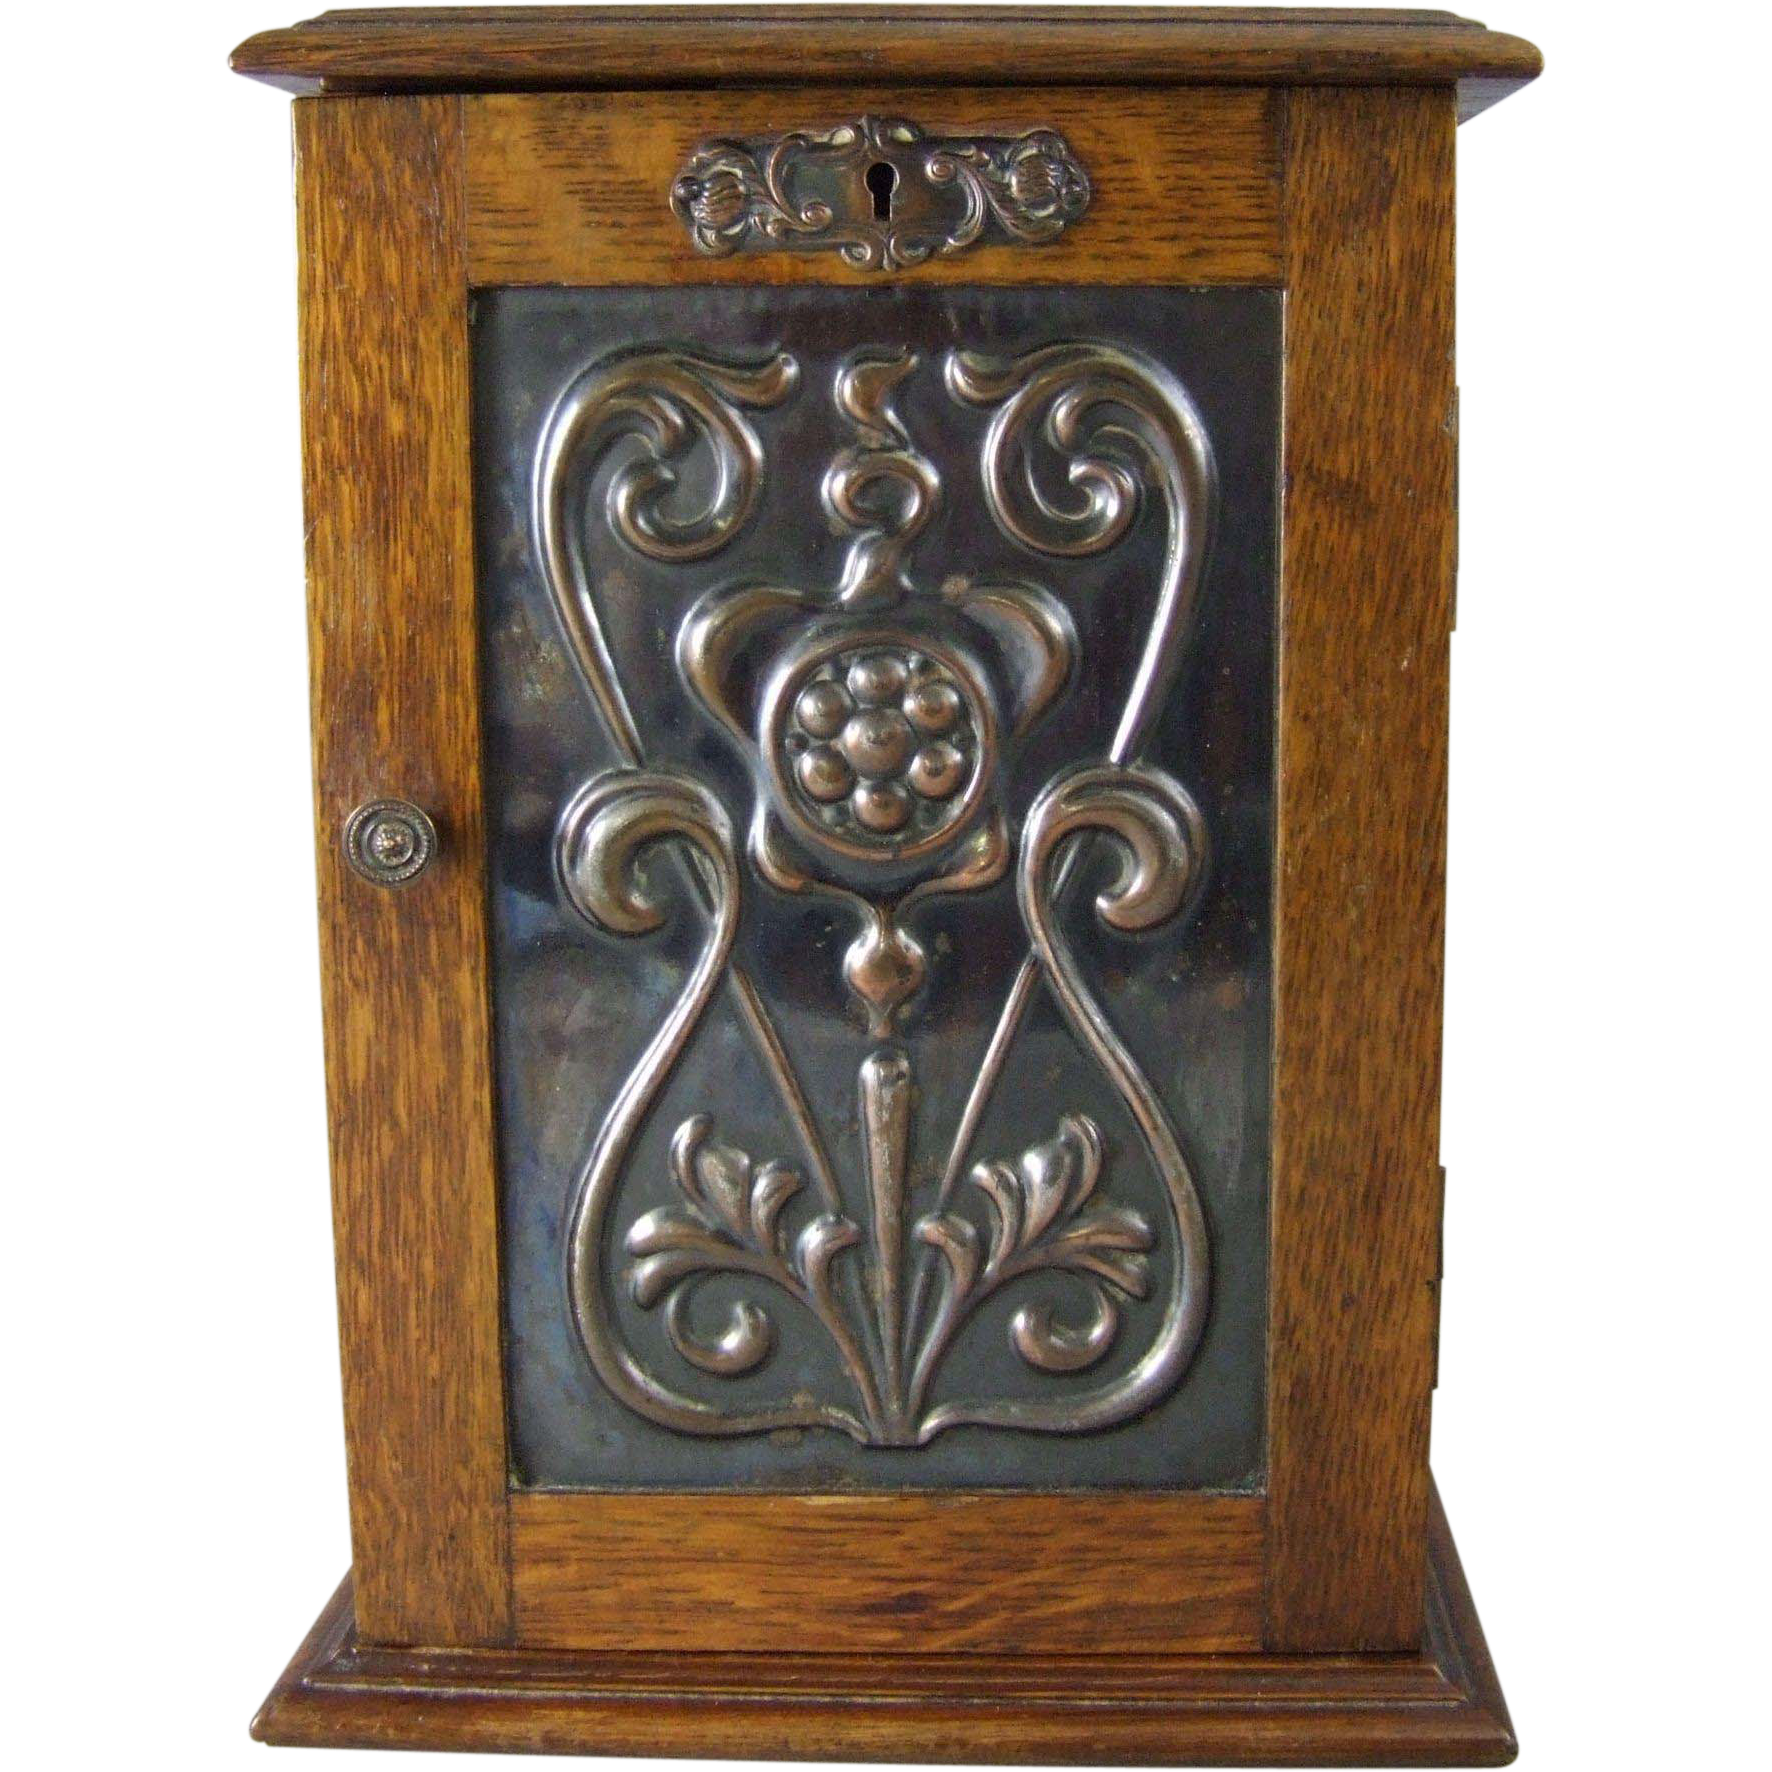 Circa 1912 Commemorative Presentation Tobacco Pipe Cabinet with Tobacco Humidor Jar from Woollen Mill Weavers